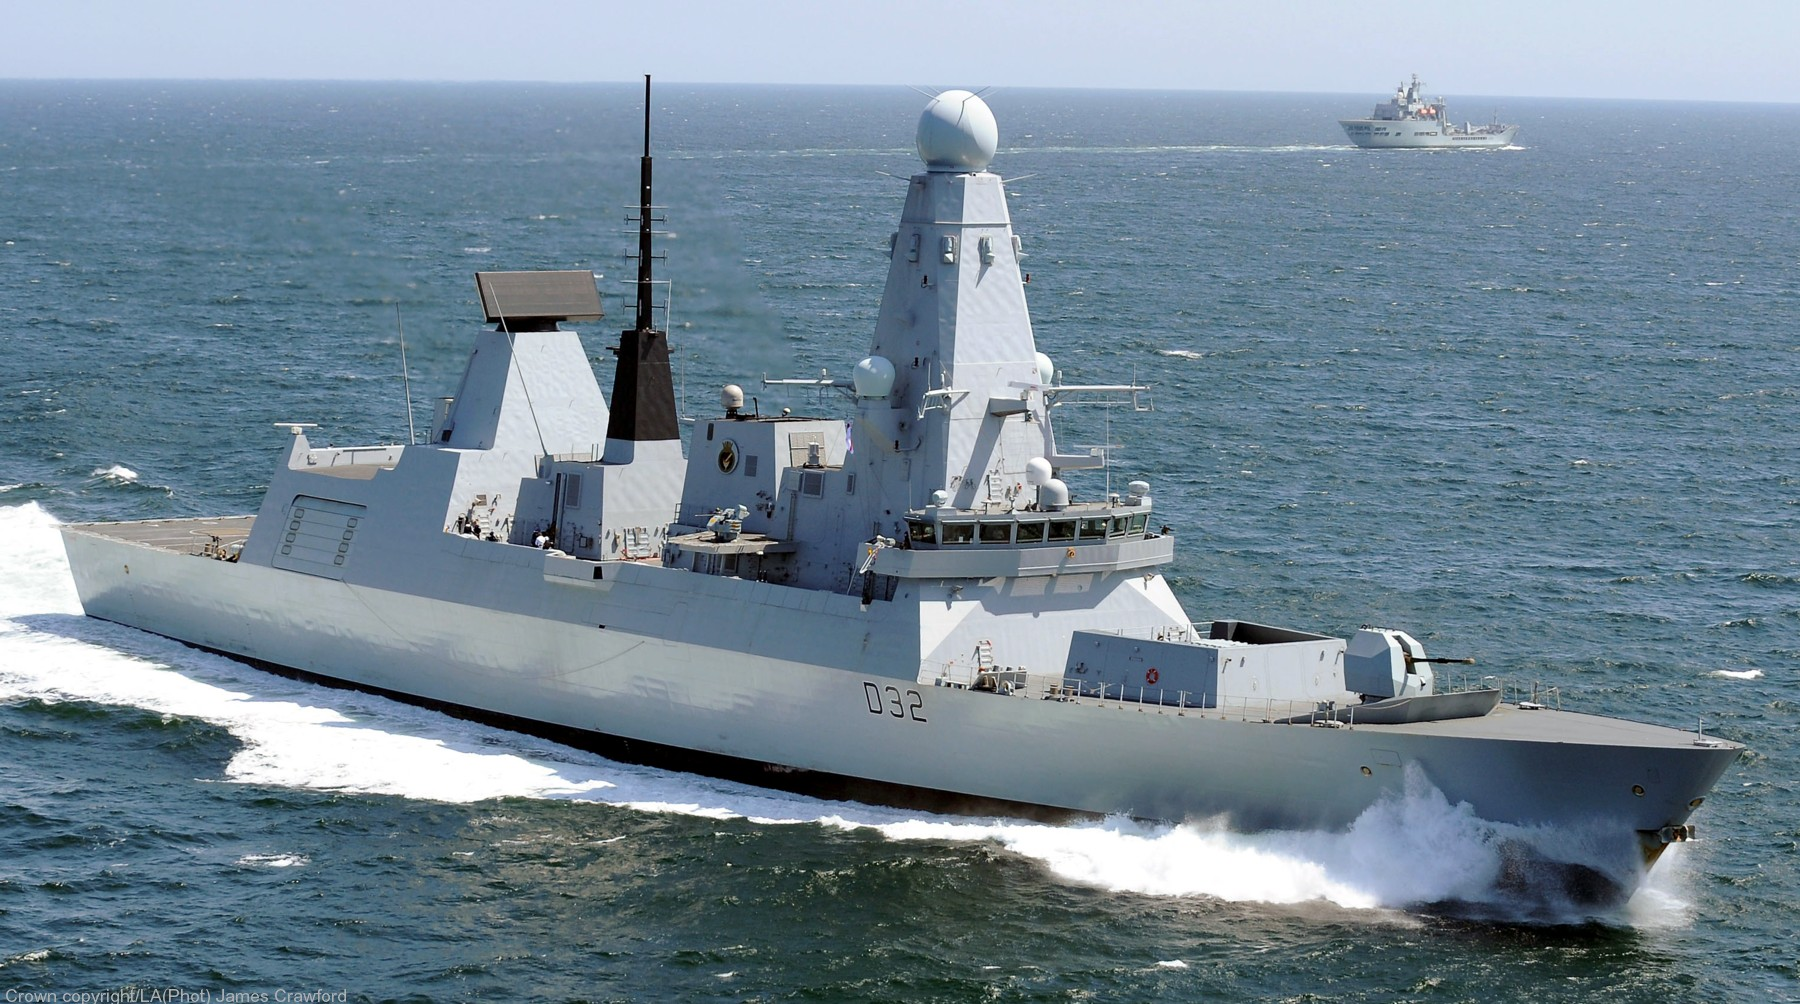 Type 45 Darin class Guided Missile Destroyer Royal Navy